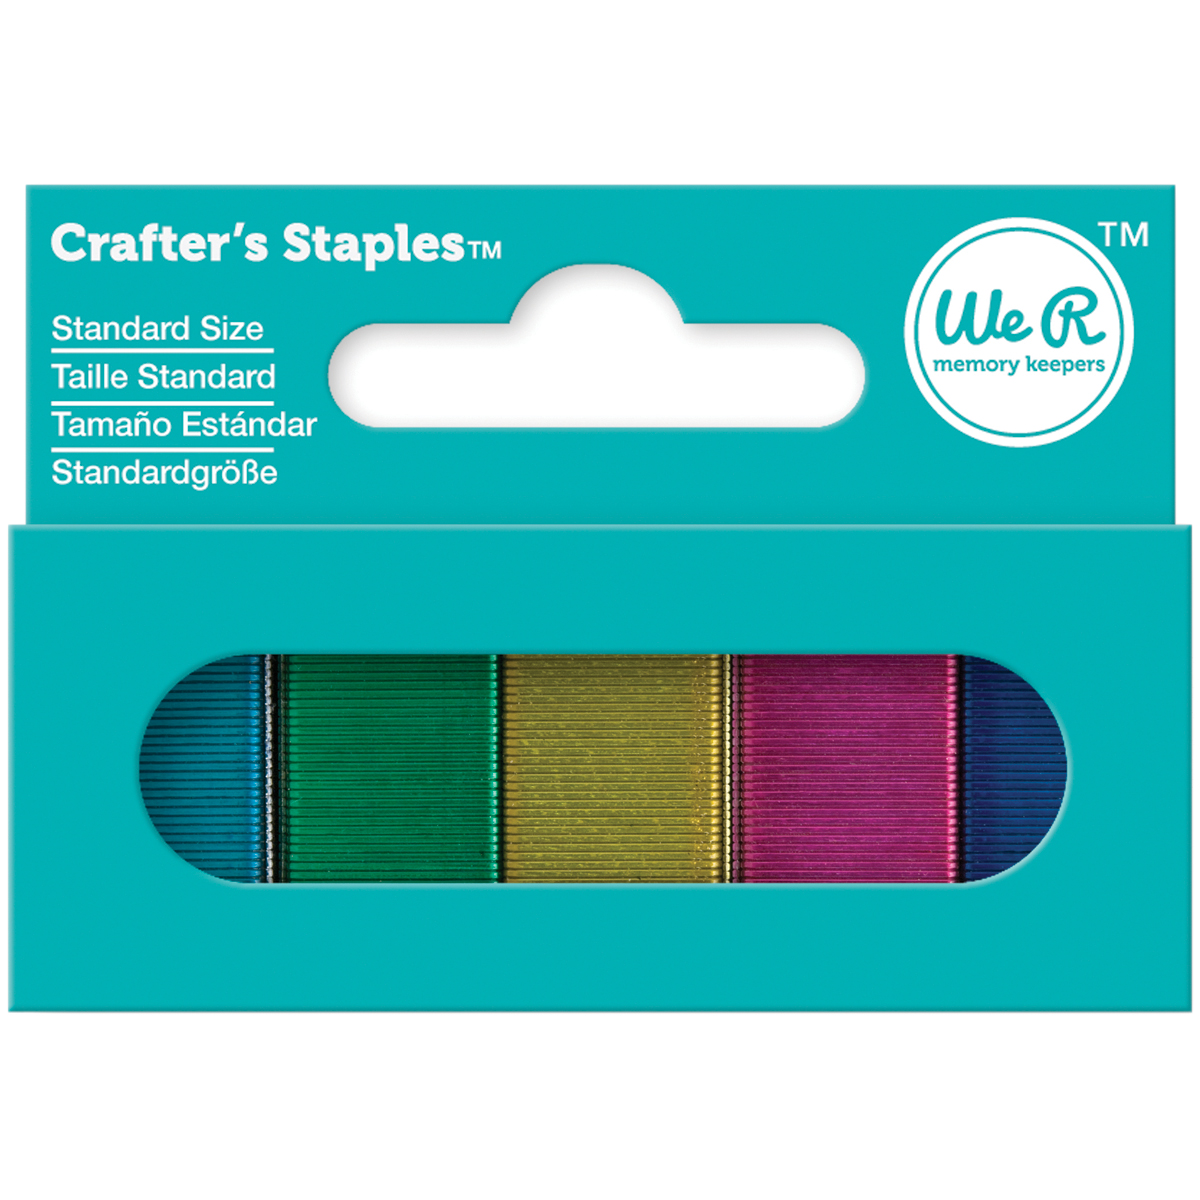 CRAFTERS STAPLES